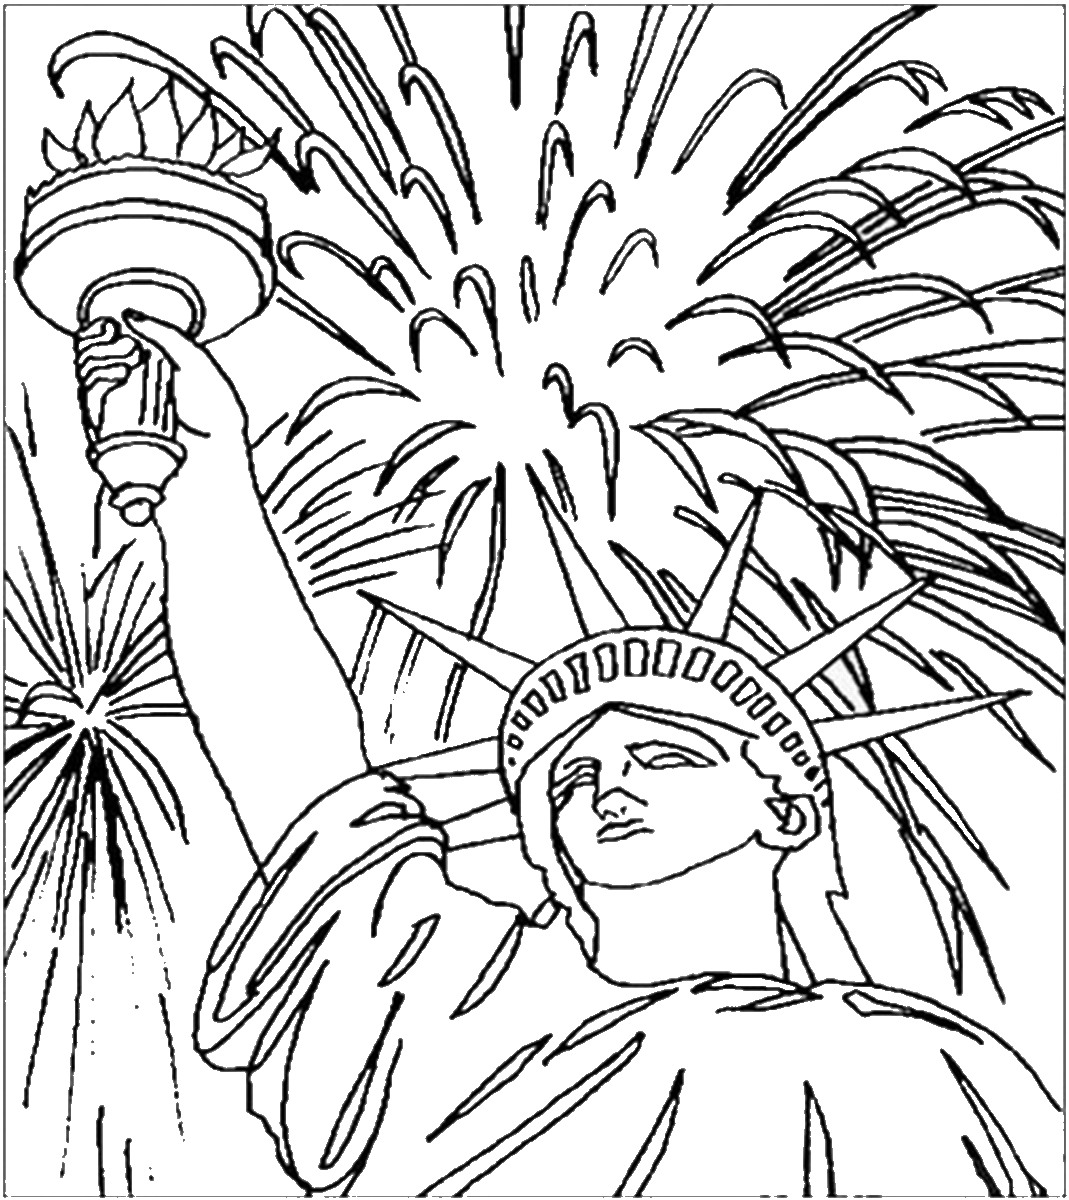 july 4 coloring pages happy 4th of july coloring pages printable templates pages july 4 coloring